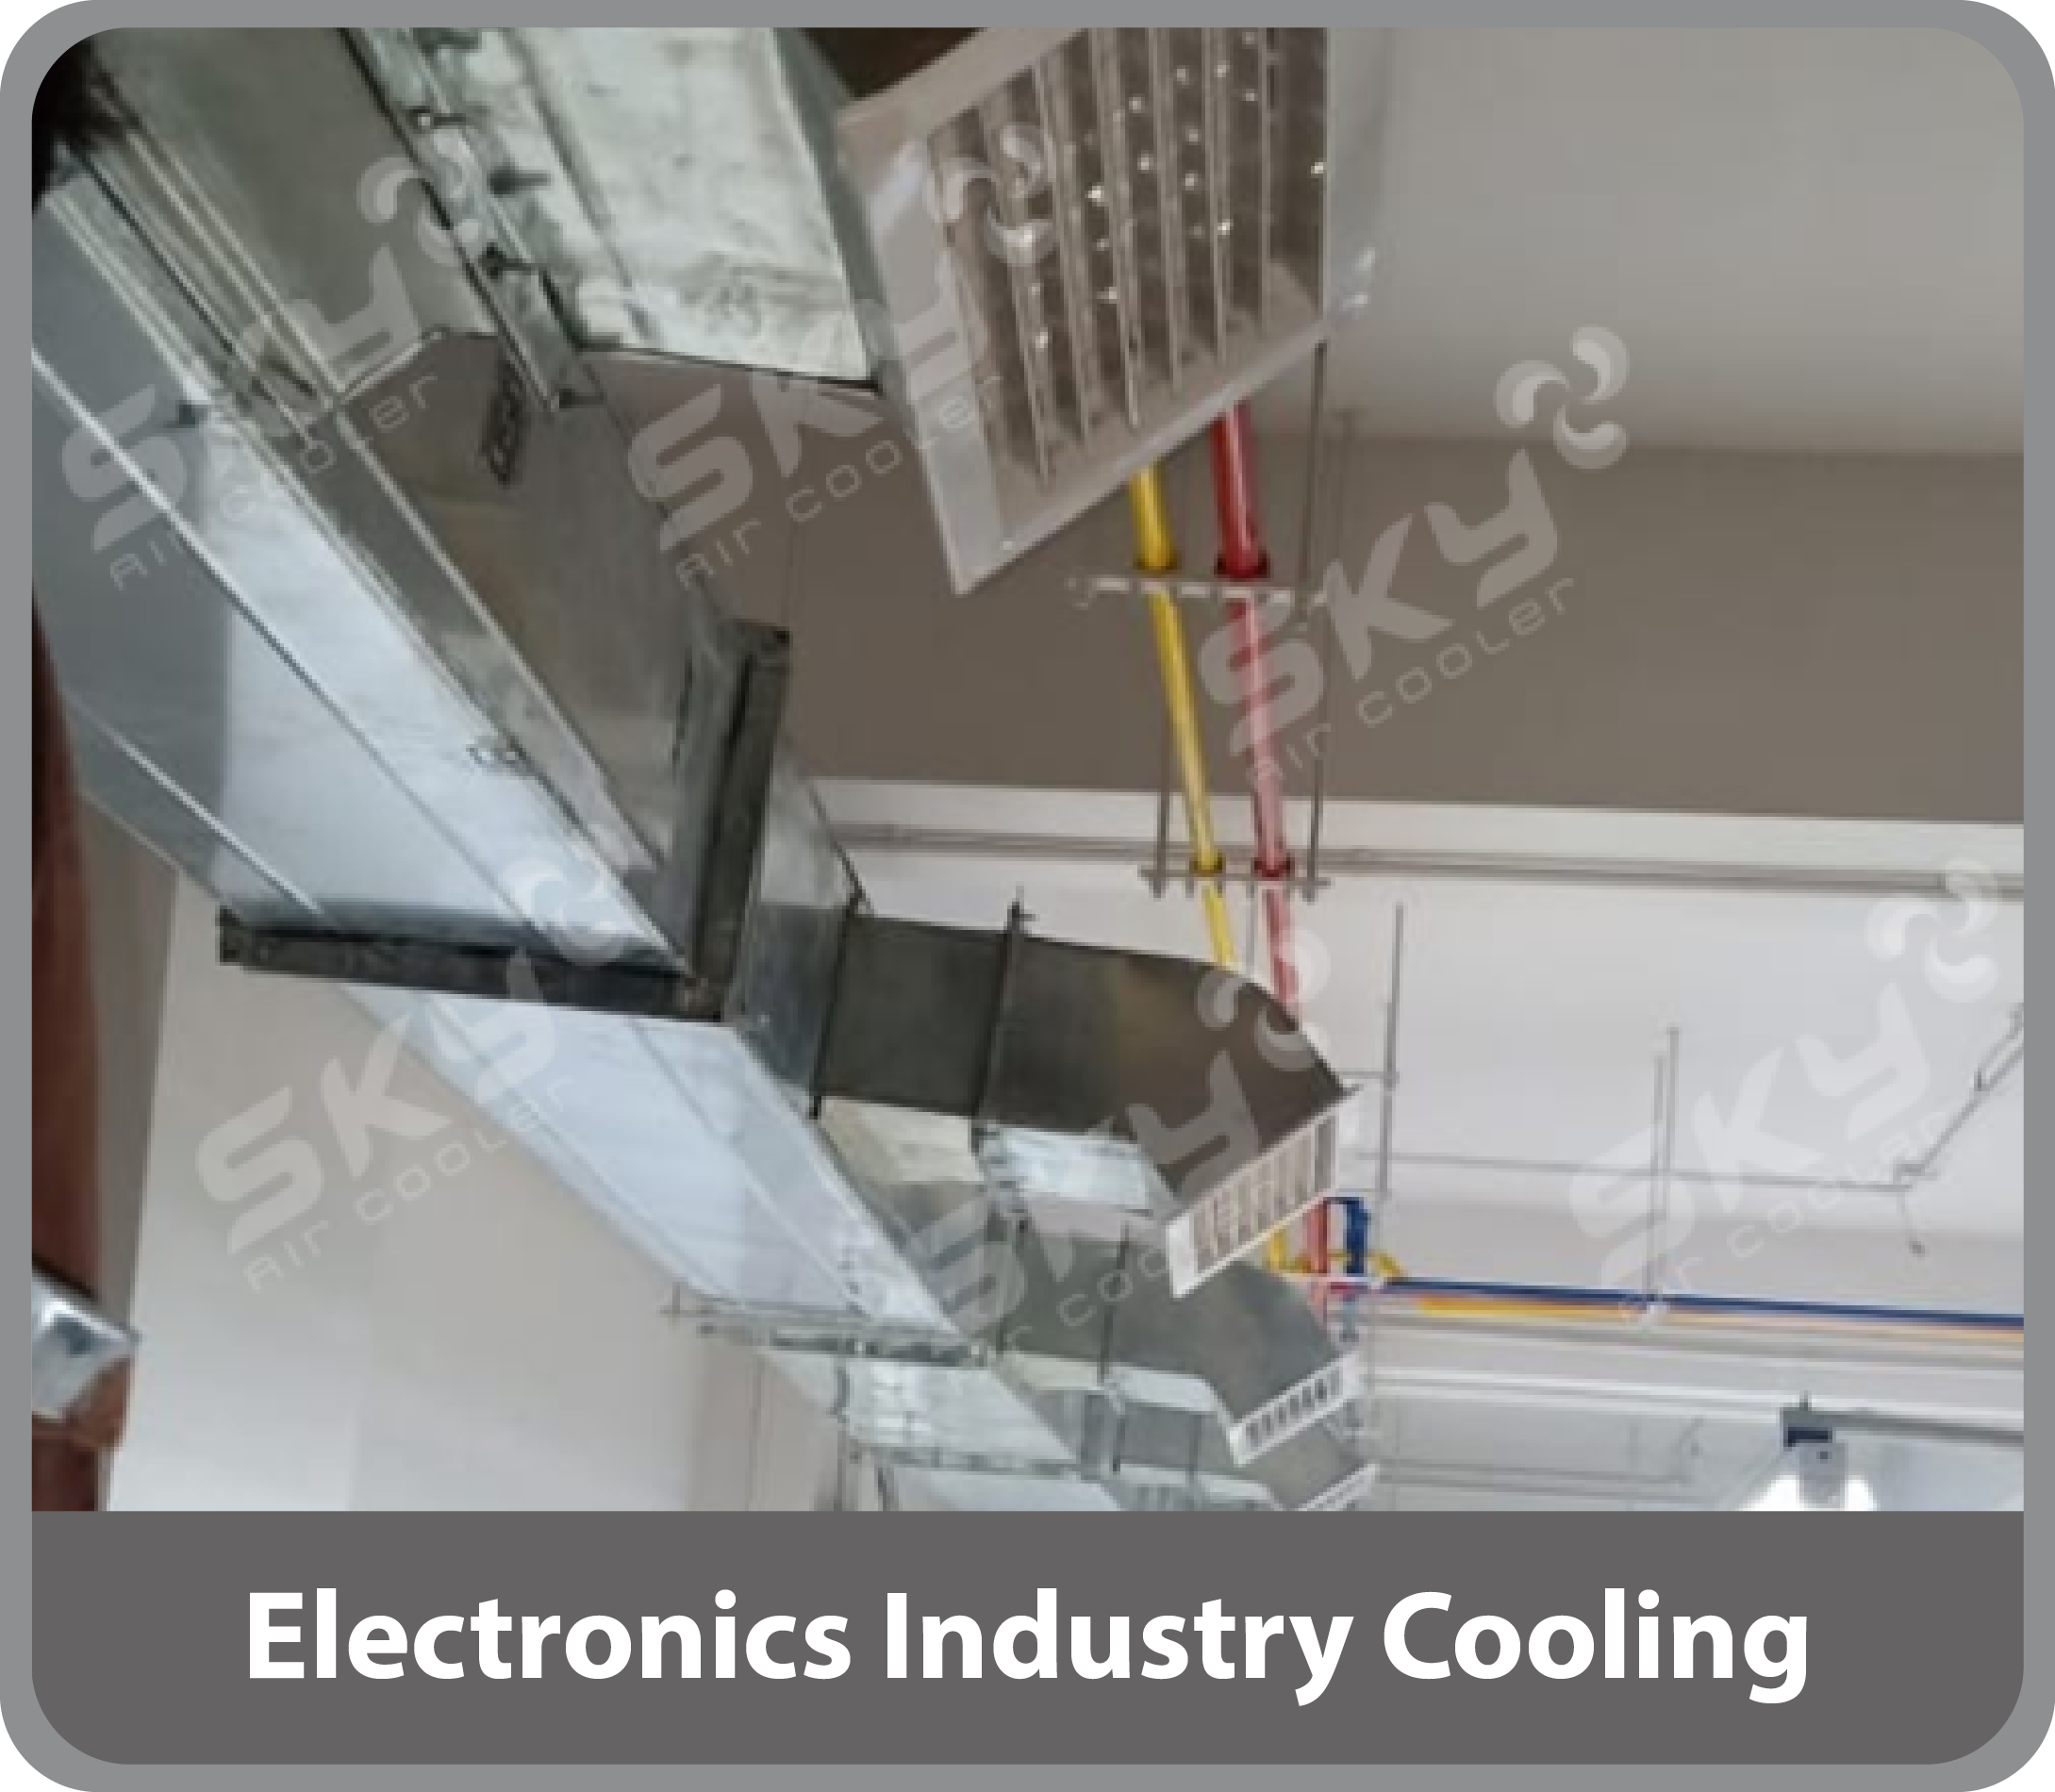 Electronics Industry Cooling